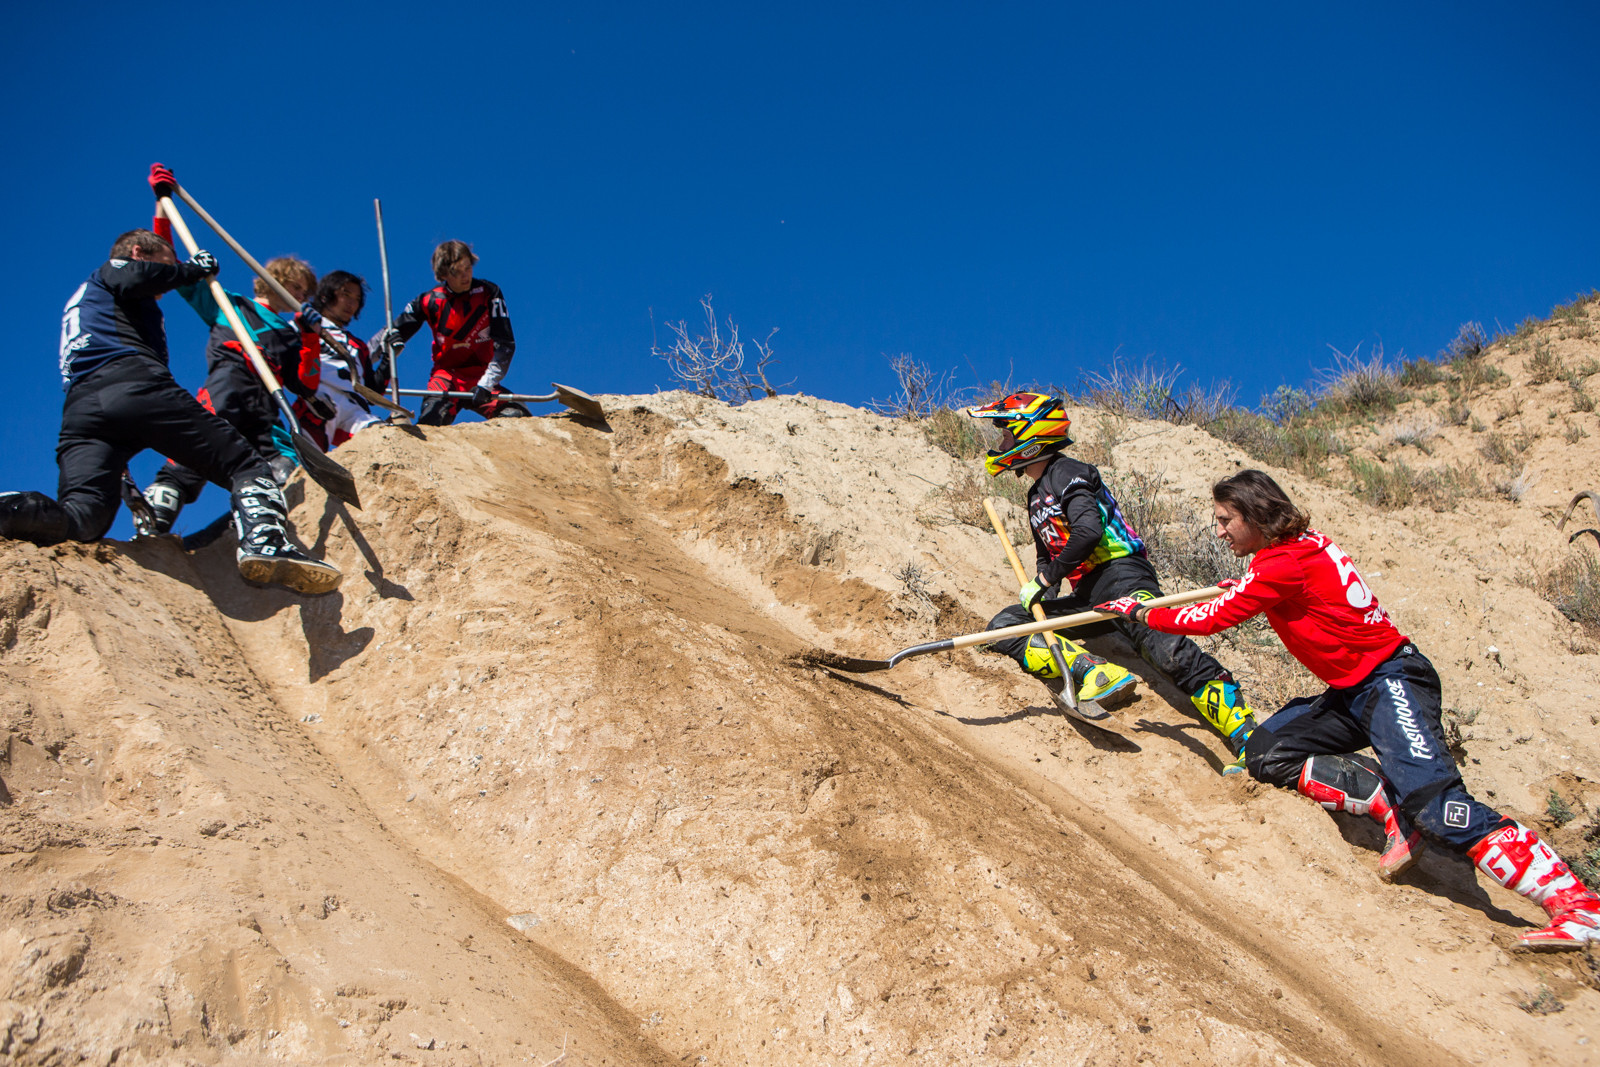 Shoveling Crew - Rain in SoCal - To the Hills of Beaumont - Motocross Pictures - Vital MX